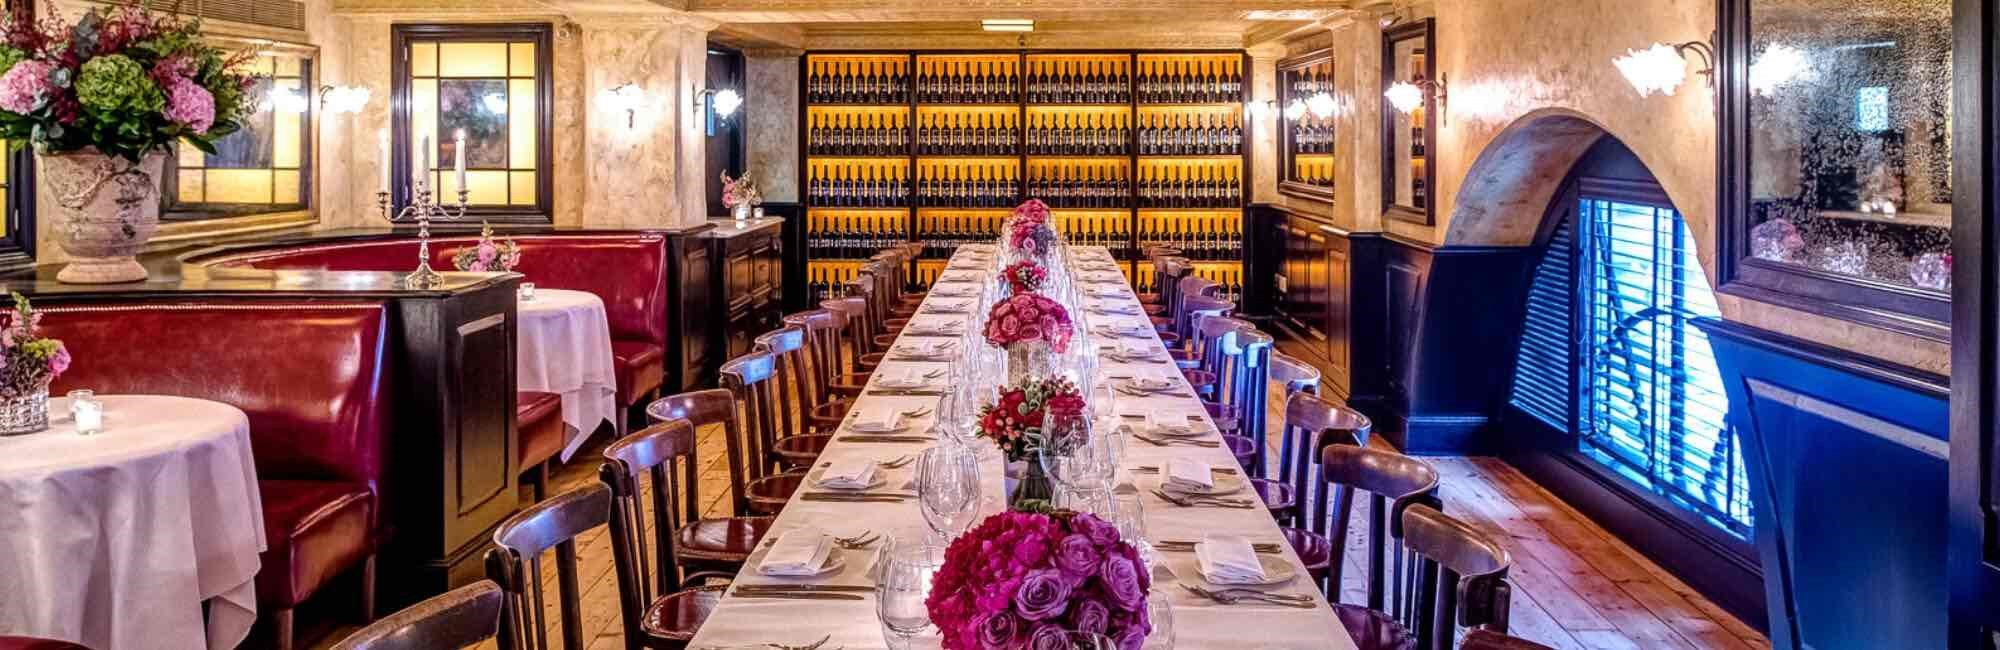 Long table laid for service for large private dining party